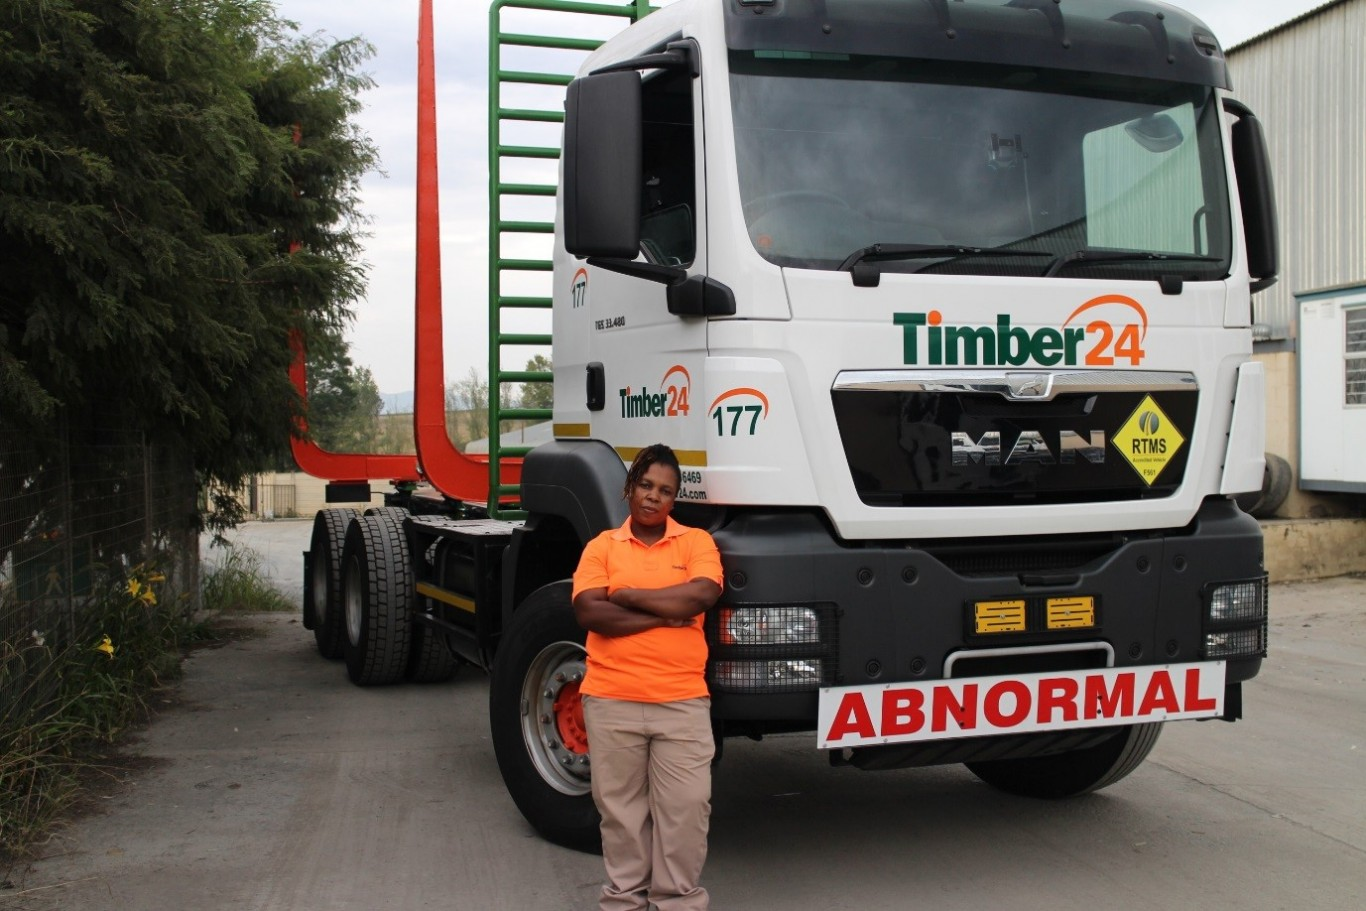 READY TO TAKE ON THE WORLD: Khonelaphi Khangwayini Ngubane's determination to break away from cultural norms and pursue a fulfilling career as a truck driver has gained the full support of her family while her male counterparts look up to her with utmost admiration and respect.